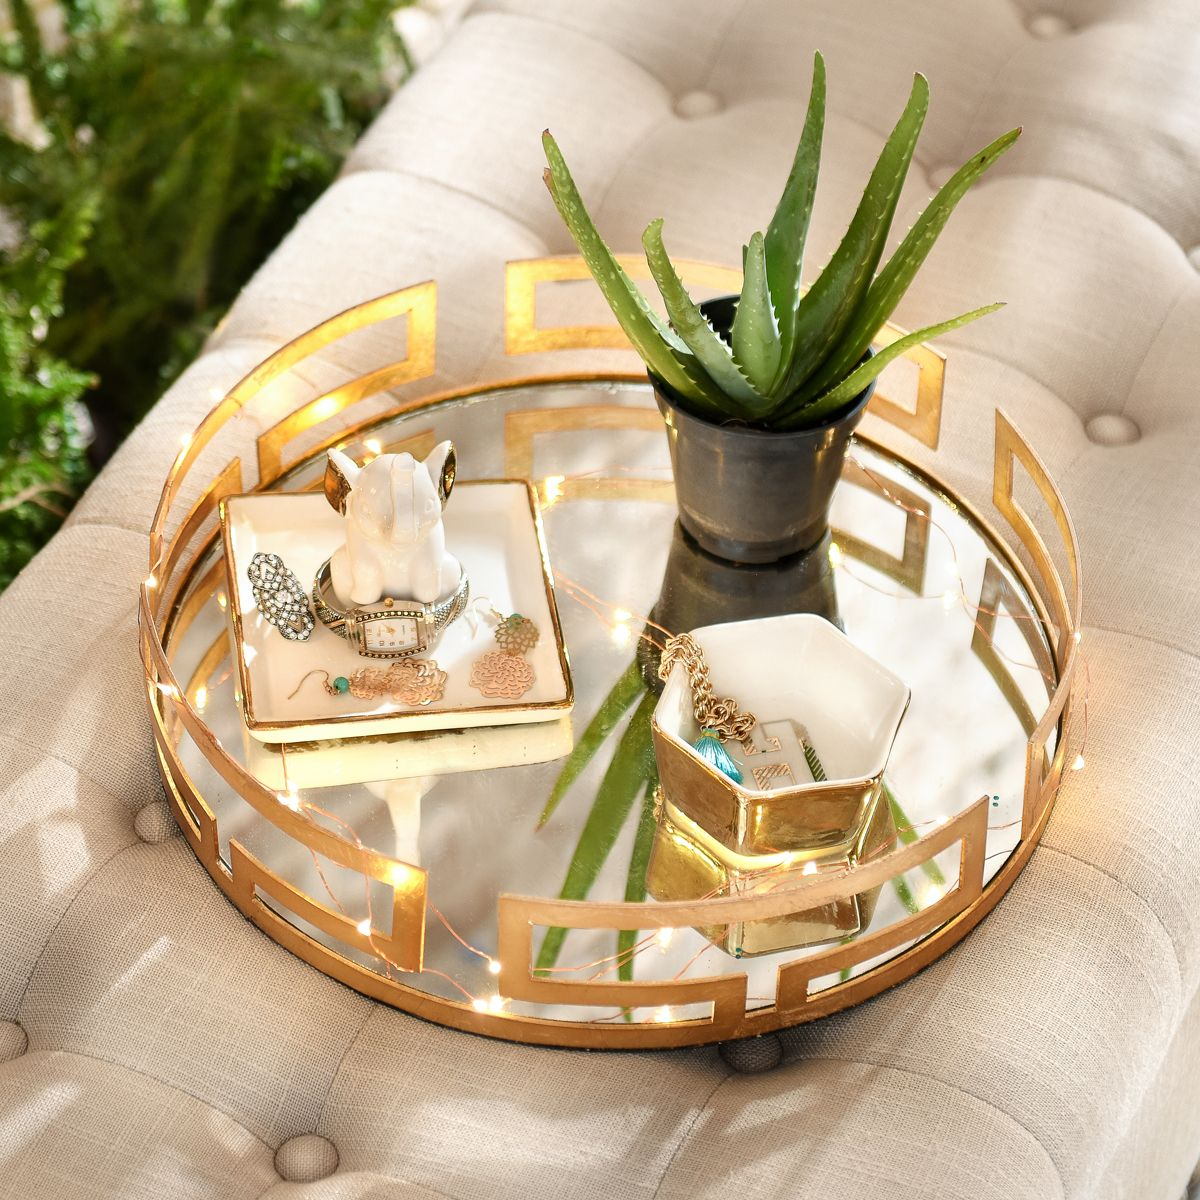 Cleo Gold Mirrored Vanity Tray Gold Tray Decor Glass Tray Decor Mirror Tray Decor